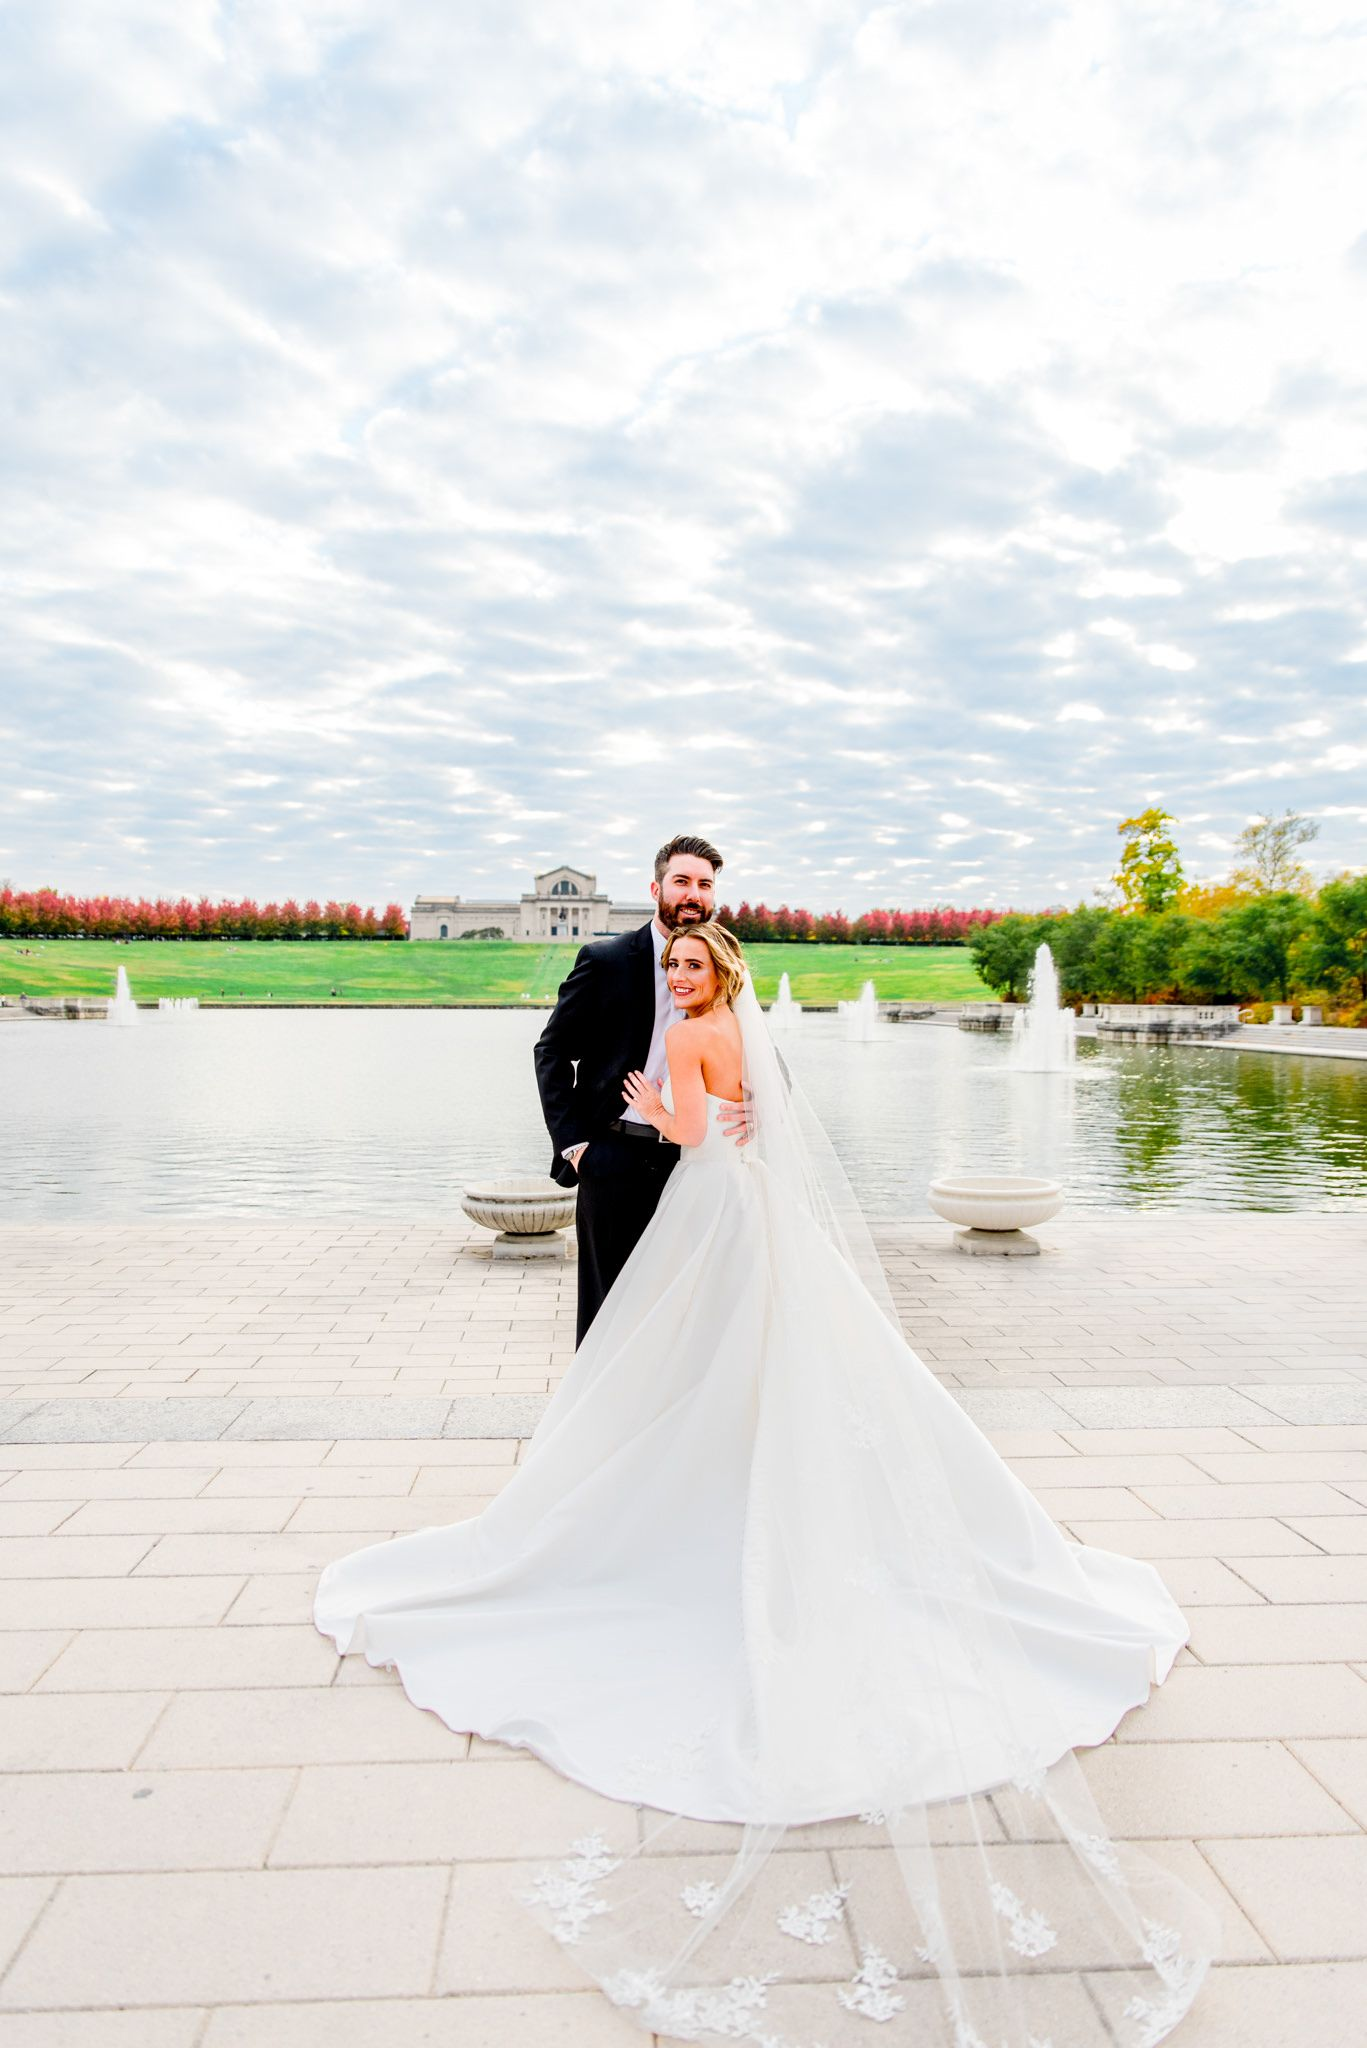 bride's wedding dress and veil fanned out next to groom under blue sky with clouds for Forest Park STL fall wedding